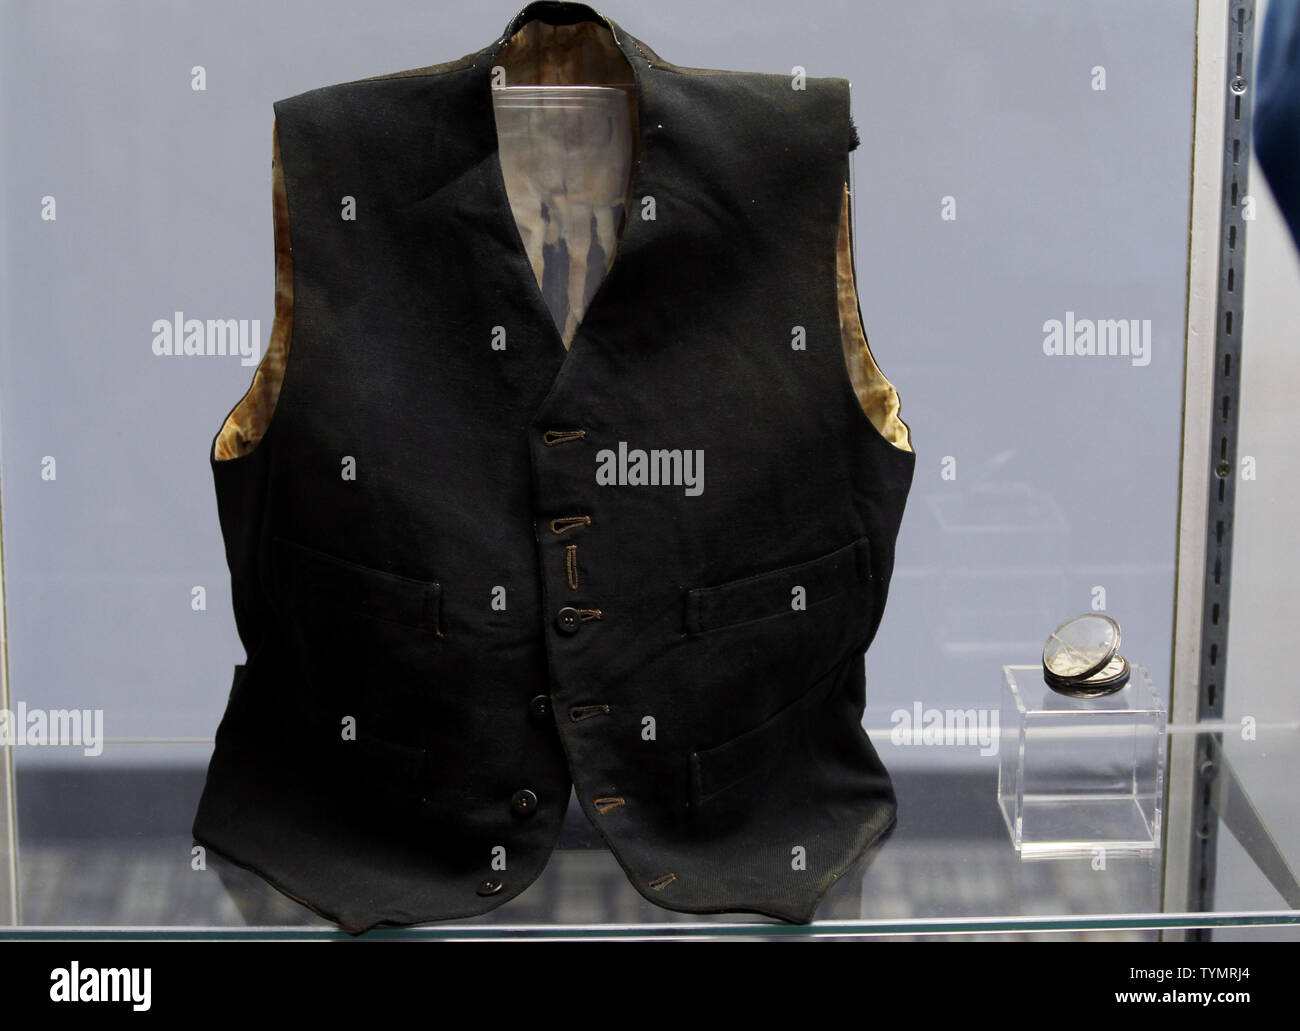 Artifacts recovered from the wreck site of the RMS Titanic are on display at the Intrepid Sea, Air & Space Museum before being auctioned in New York City on January 5, 2012. The auction will take place on April 11, 2012 on the 100 year anniversary of the ships maiden voyage and will be sold as one single collection.    UPI/John Angelillo - Stock Image